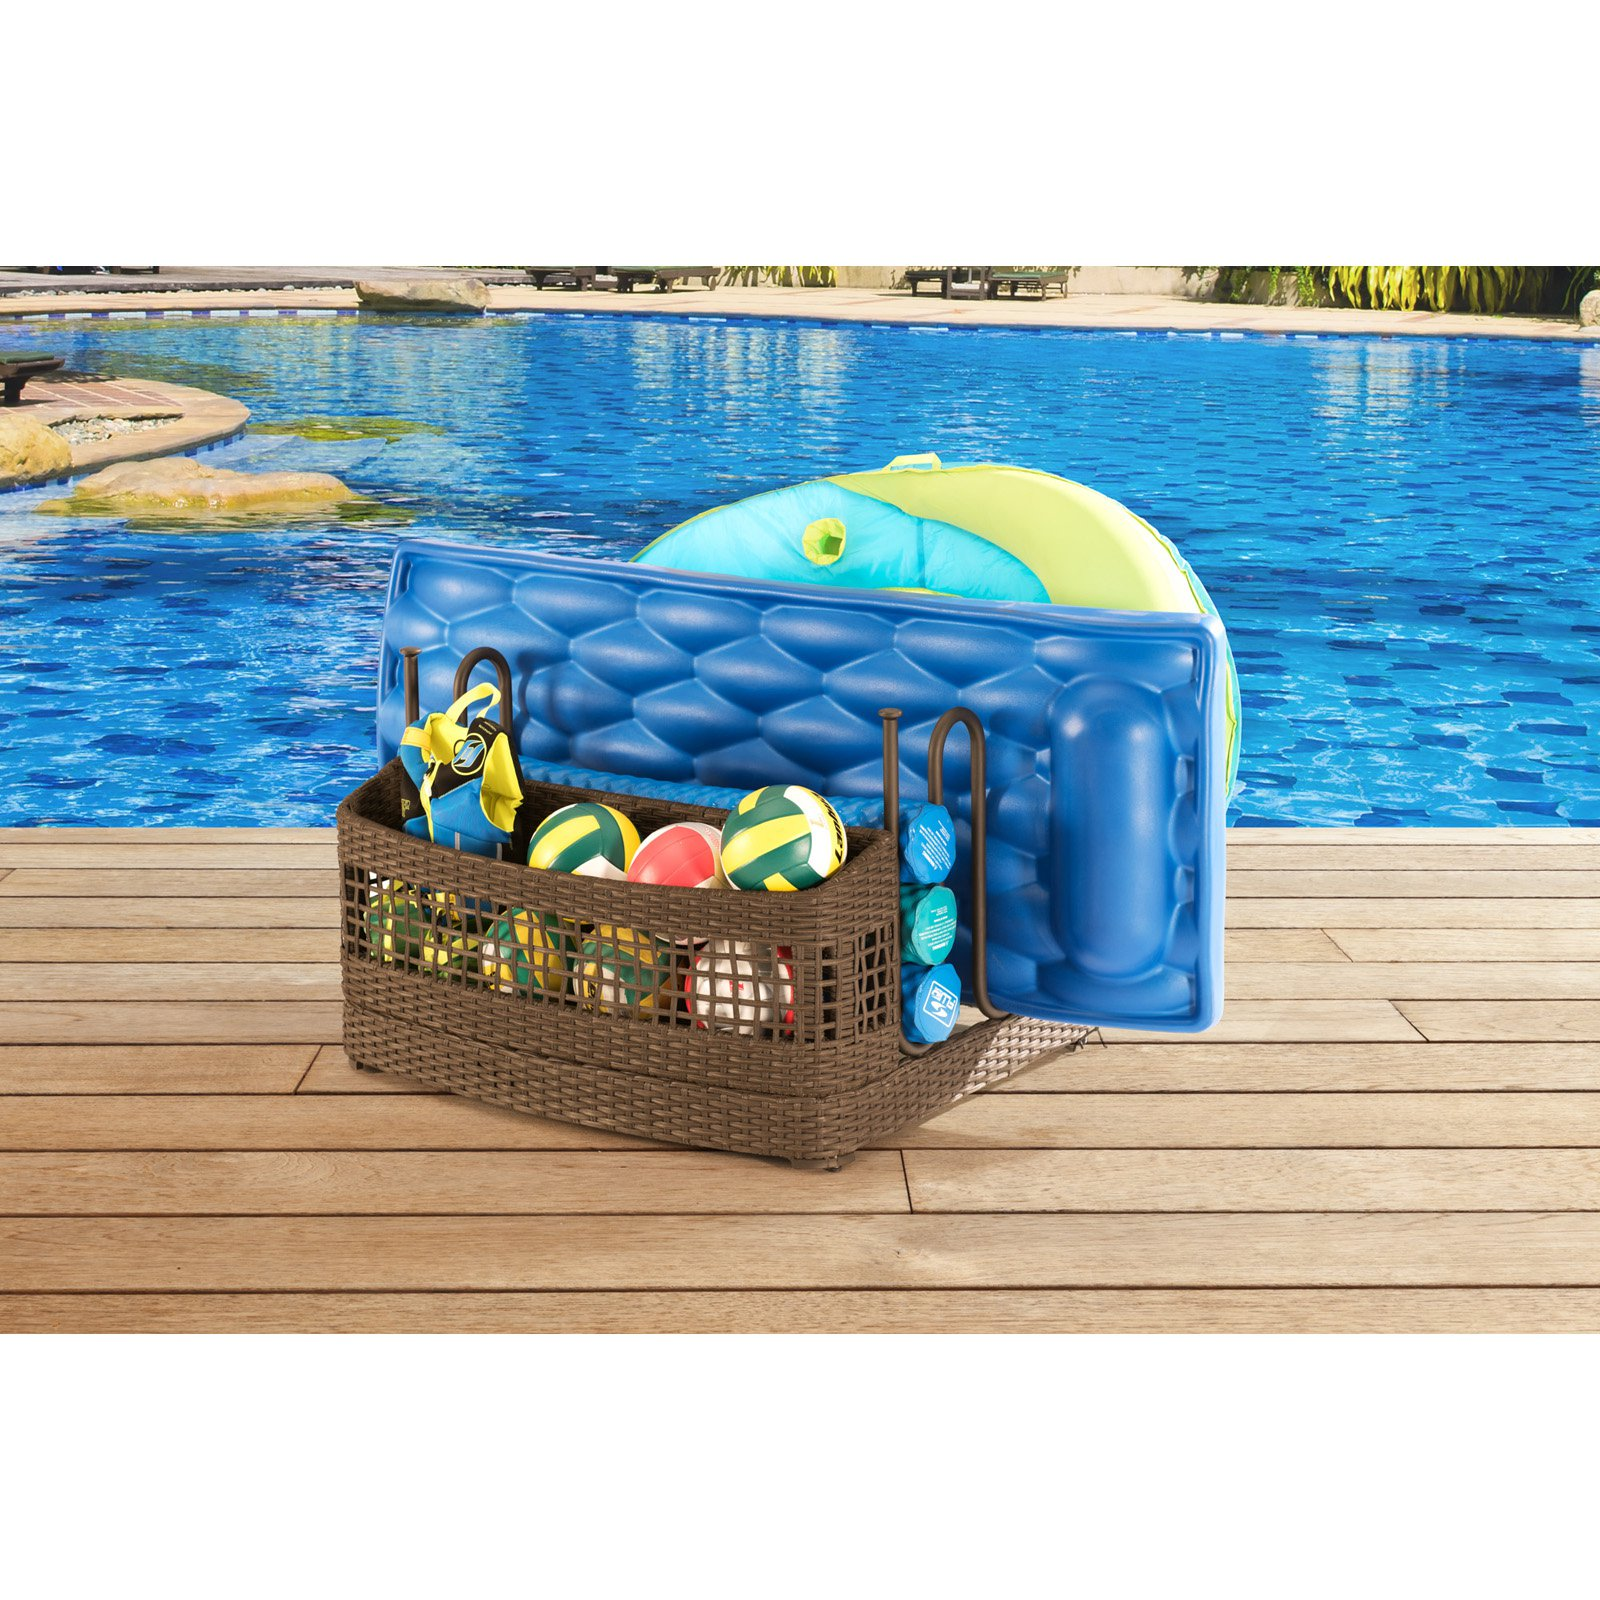 SunNest Sunjoy Rattan Pool Float Storage Stand by Overstock